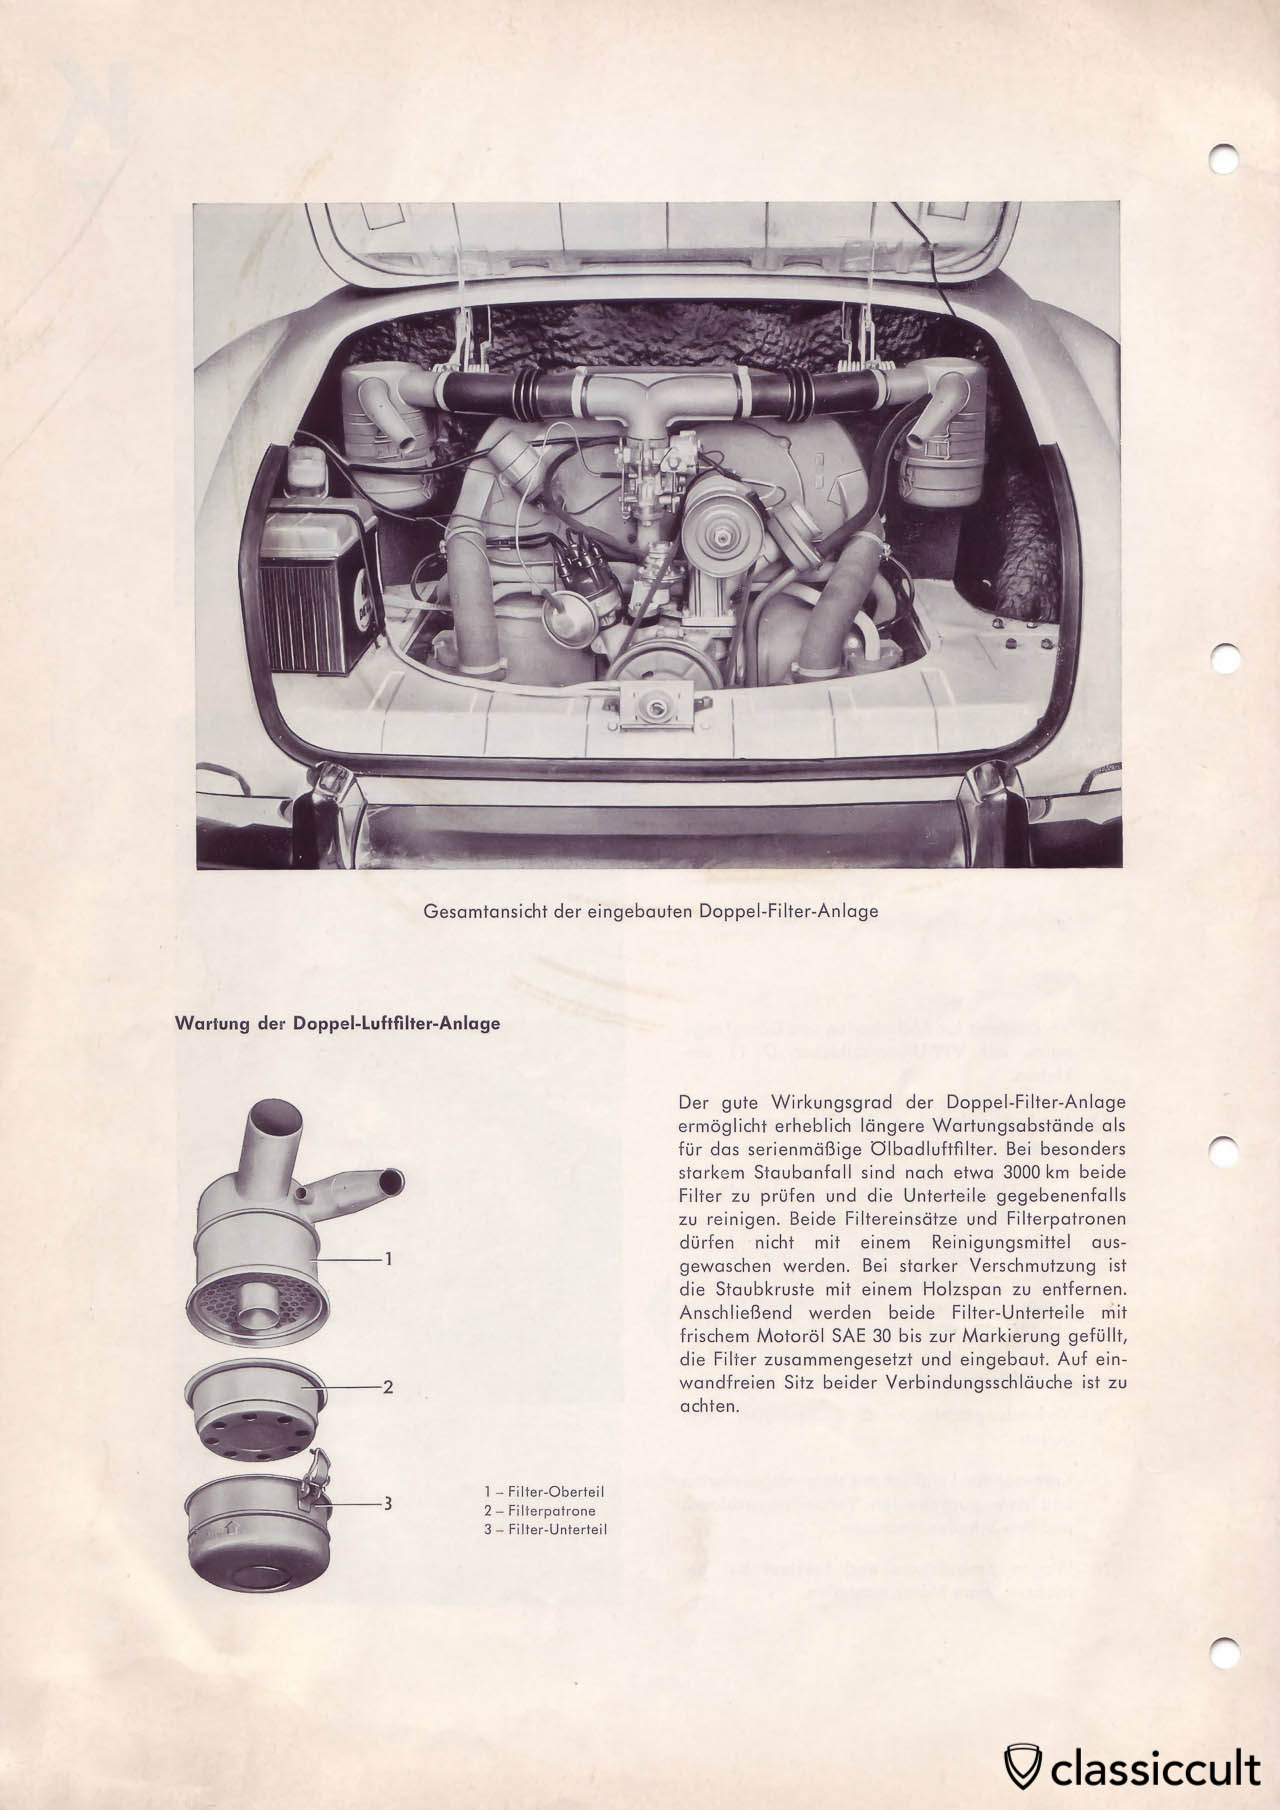 Mounting instructions for the dusty conditions air cleaner in 1966 Karmann Ghia.